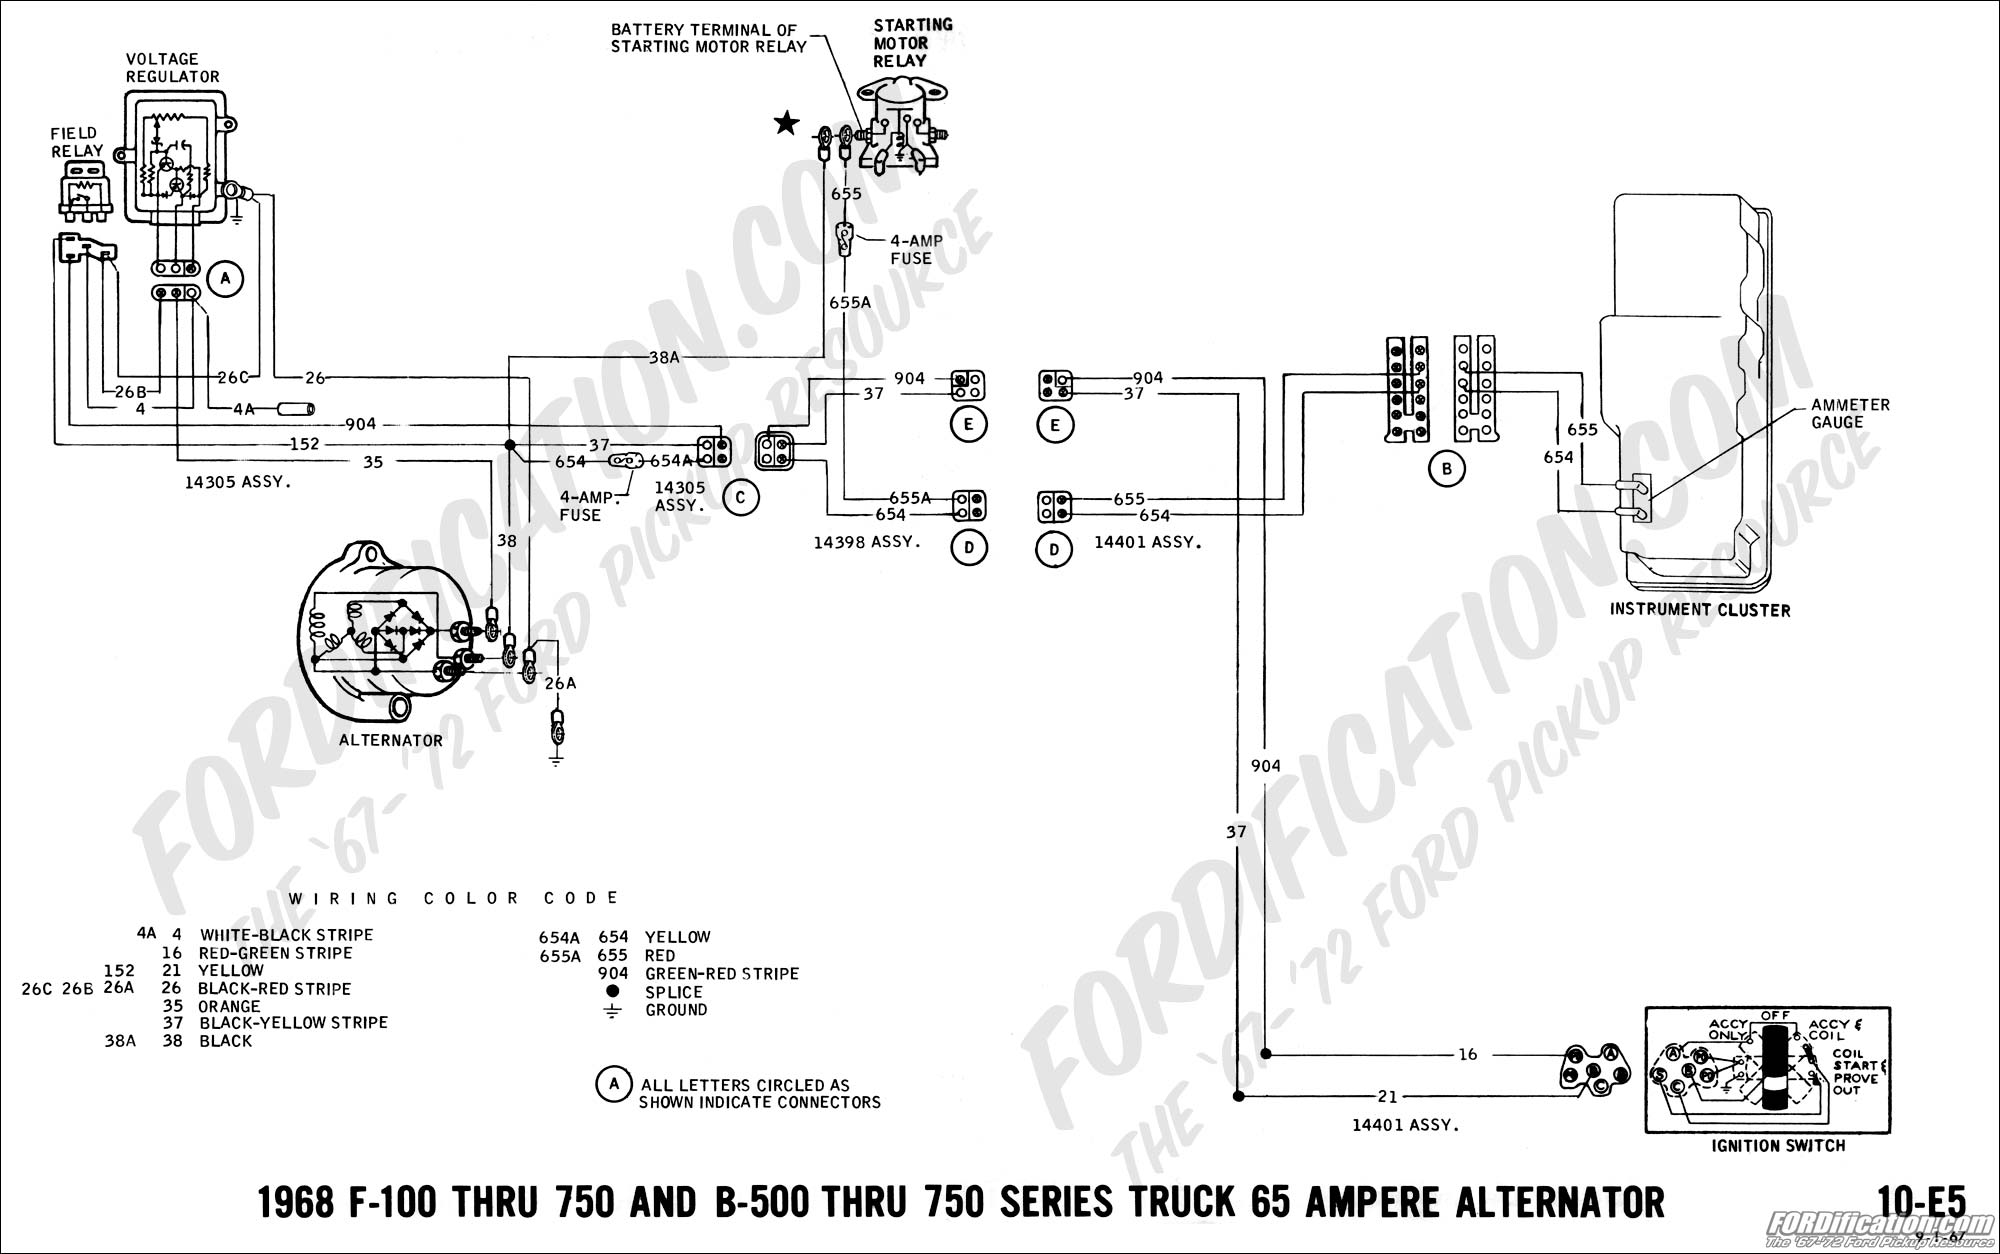 68 07 1968 ford f100 wiring diagram 1965 ford f100 alternator wiring 1965 ford mustang wiring diagrams at crackthecode.co